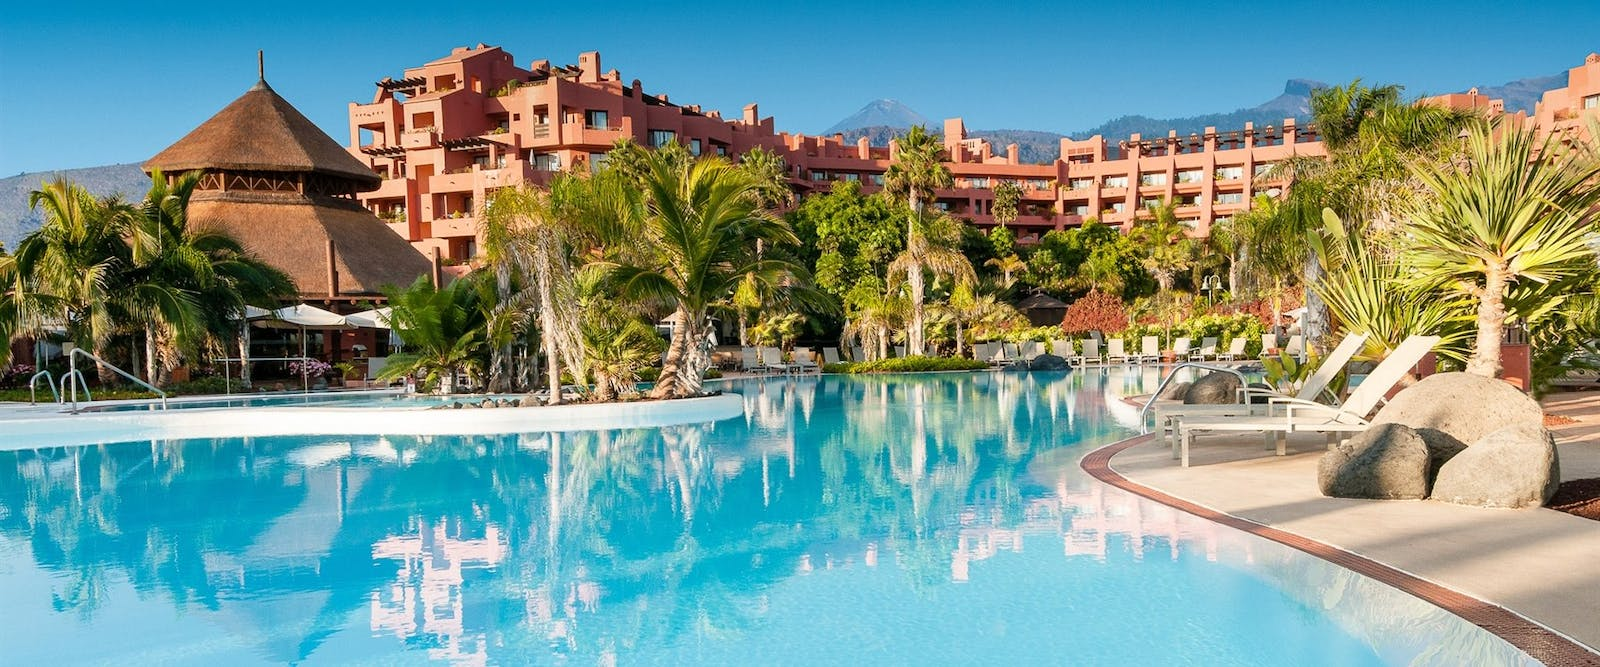 Pool and Gardens at Sheraton La Caleta Resort, Tenerife